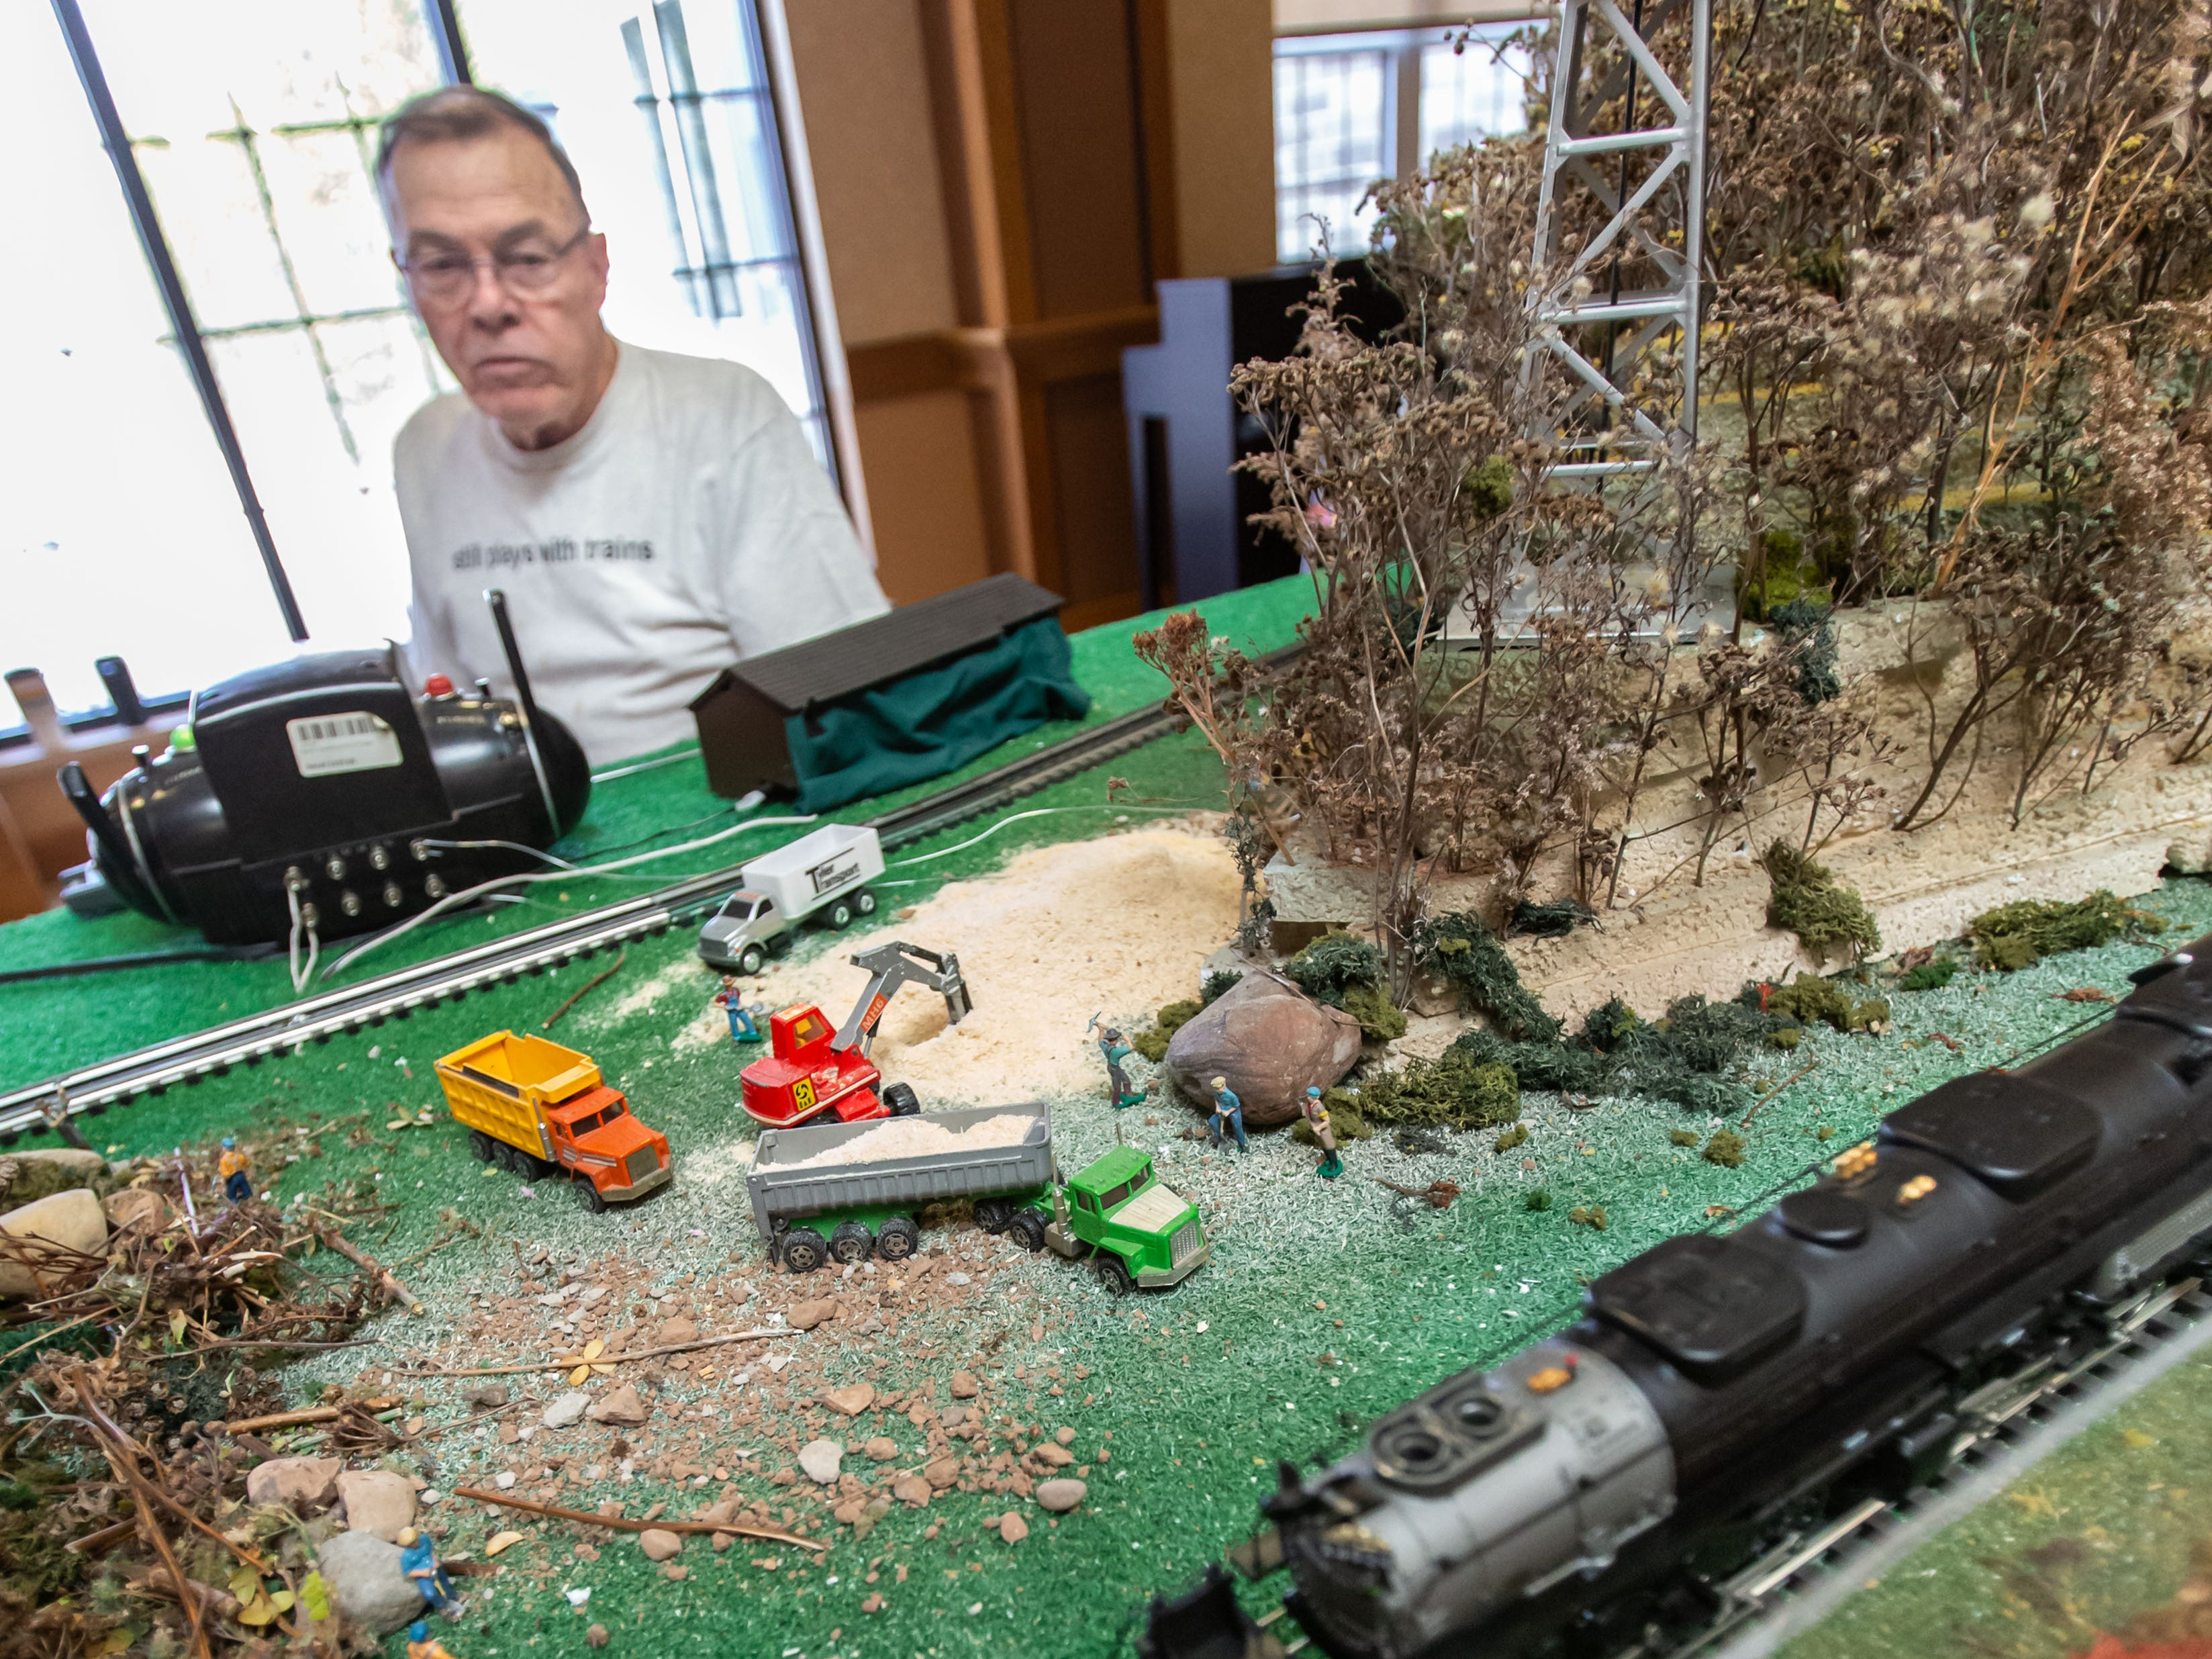 Dean Rupnow of Weyerhaeuser controls a train on his highly detailed layout during the Trains, Tracks and Switches exhibit at Shorehaven Health and Rehabilitation Center in Oconomowoc on Thursday, March 28, 2019.